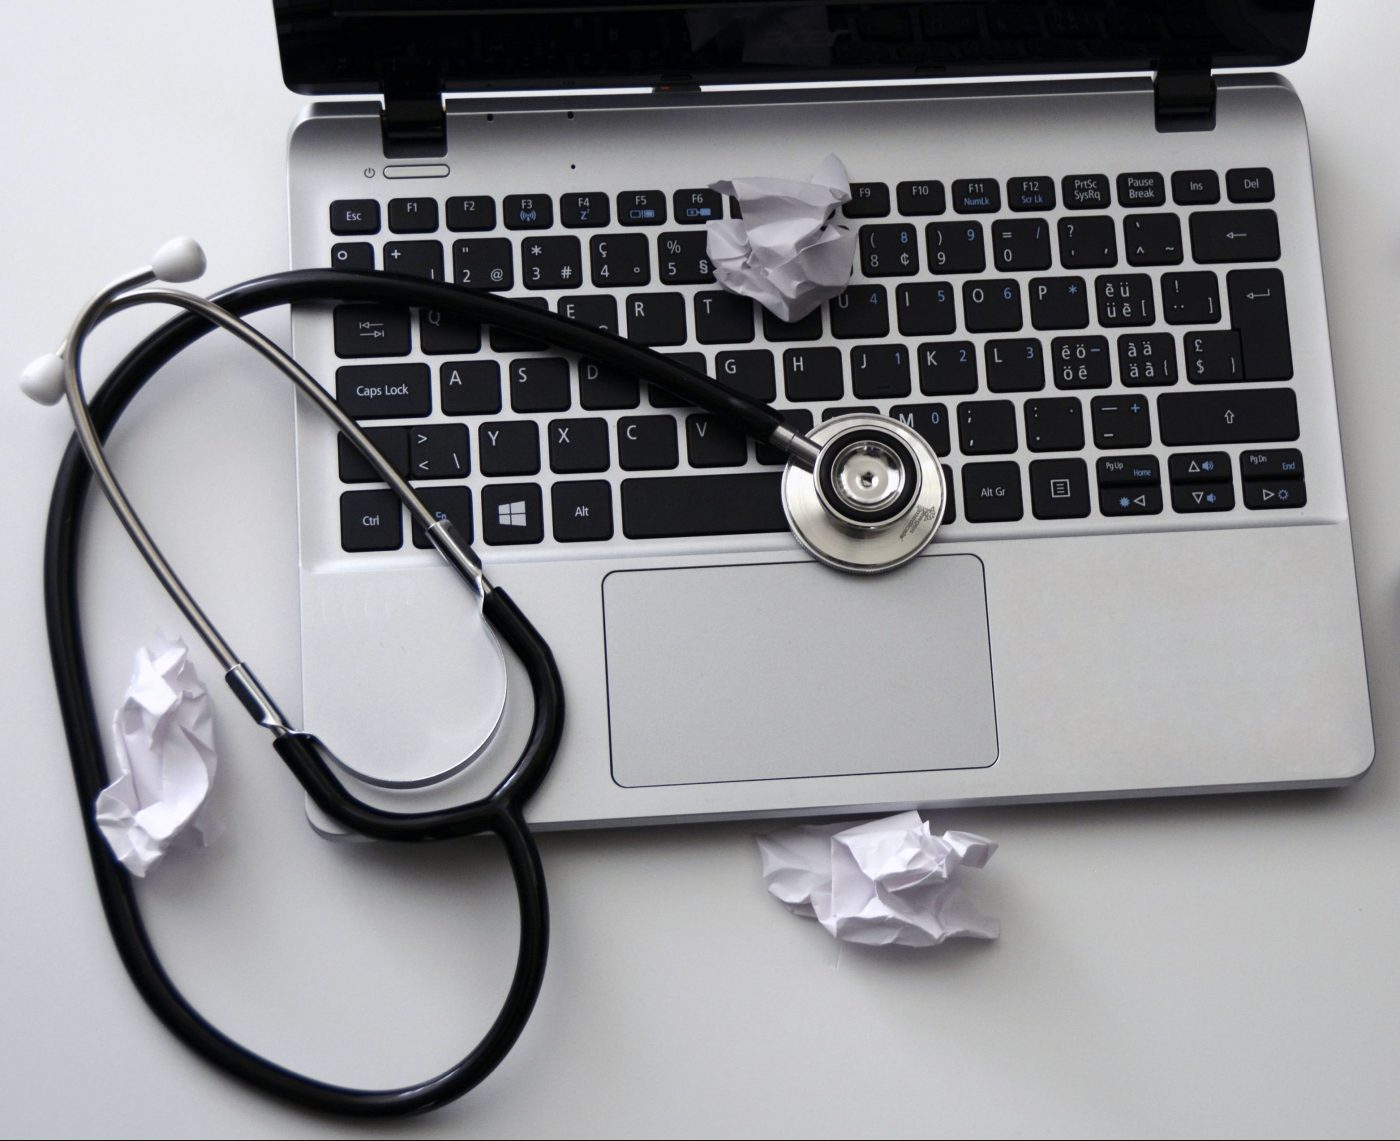 Computer, stethoscope, and many crumpled pieces of paper. Image depicts the struggle of developing and implementing wellness programs for healthcare providers.